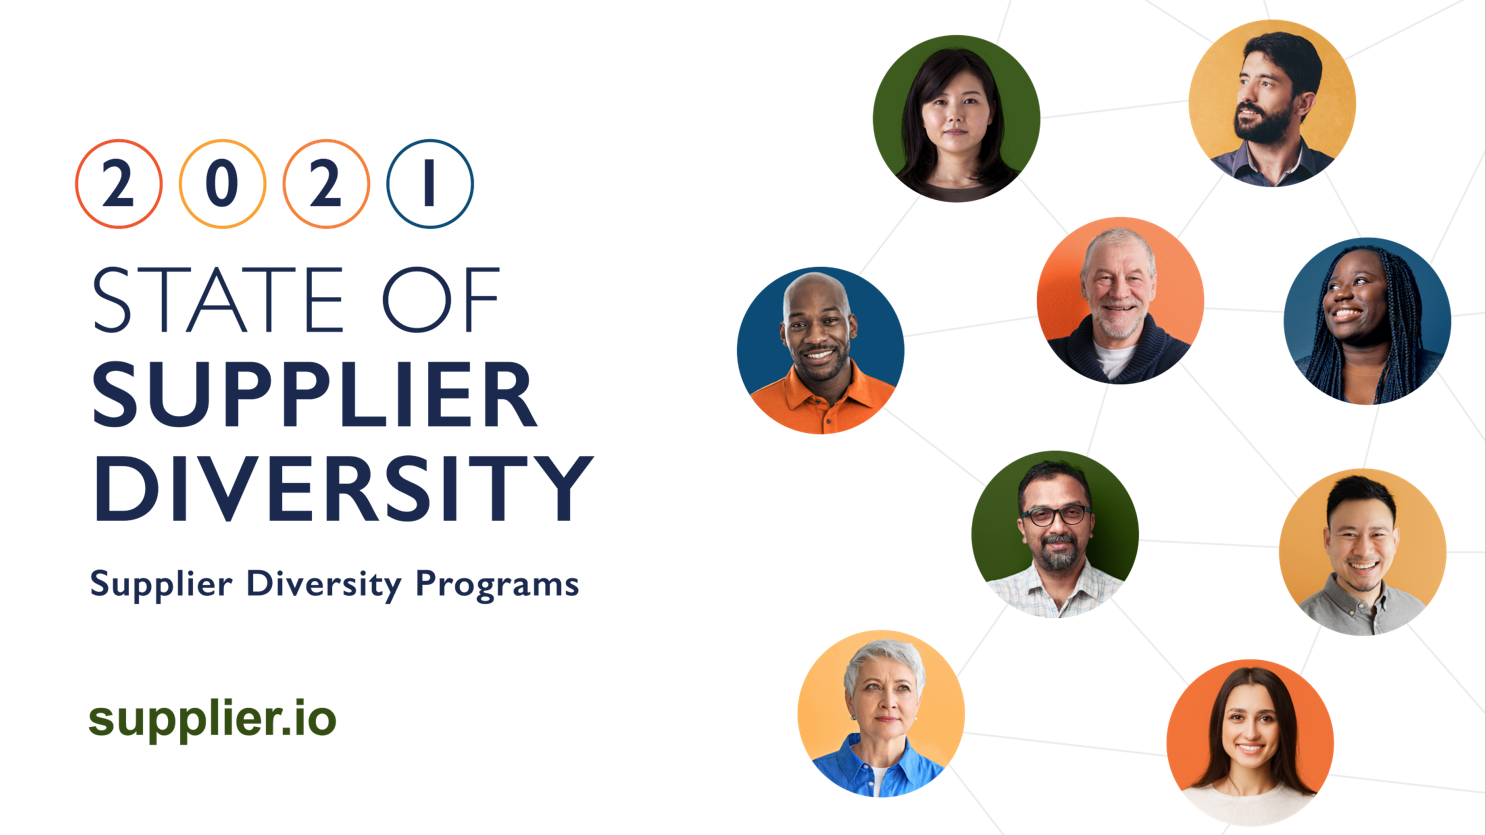 2021 State of Supplier Diversity Report